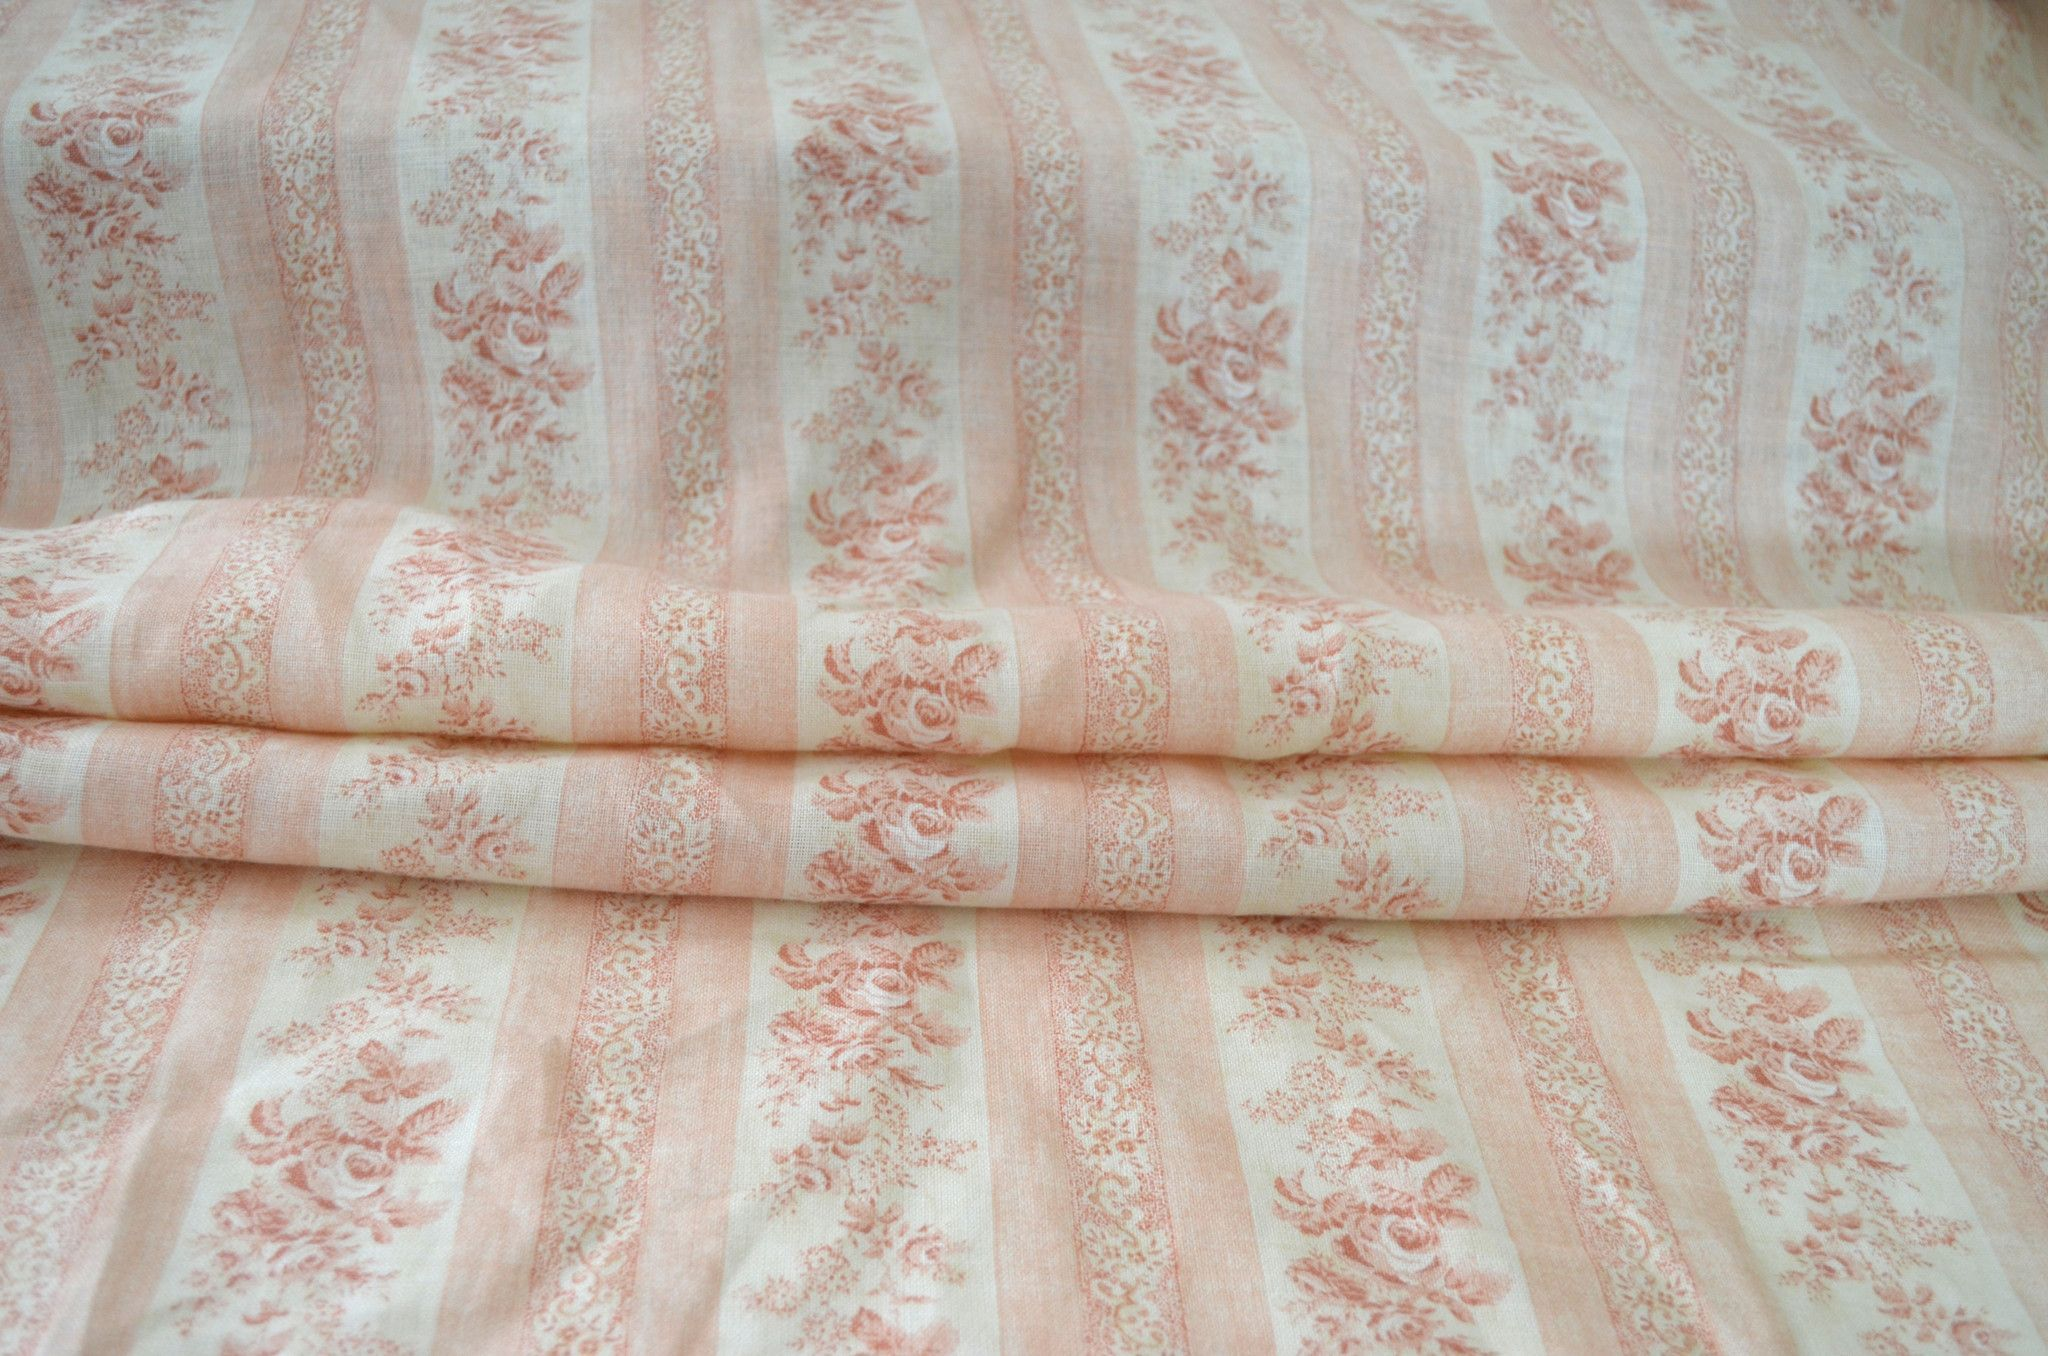 53 Wide X 36 Long This Is A Beautiful Quality Upholstery Weight Linen With